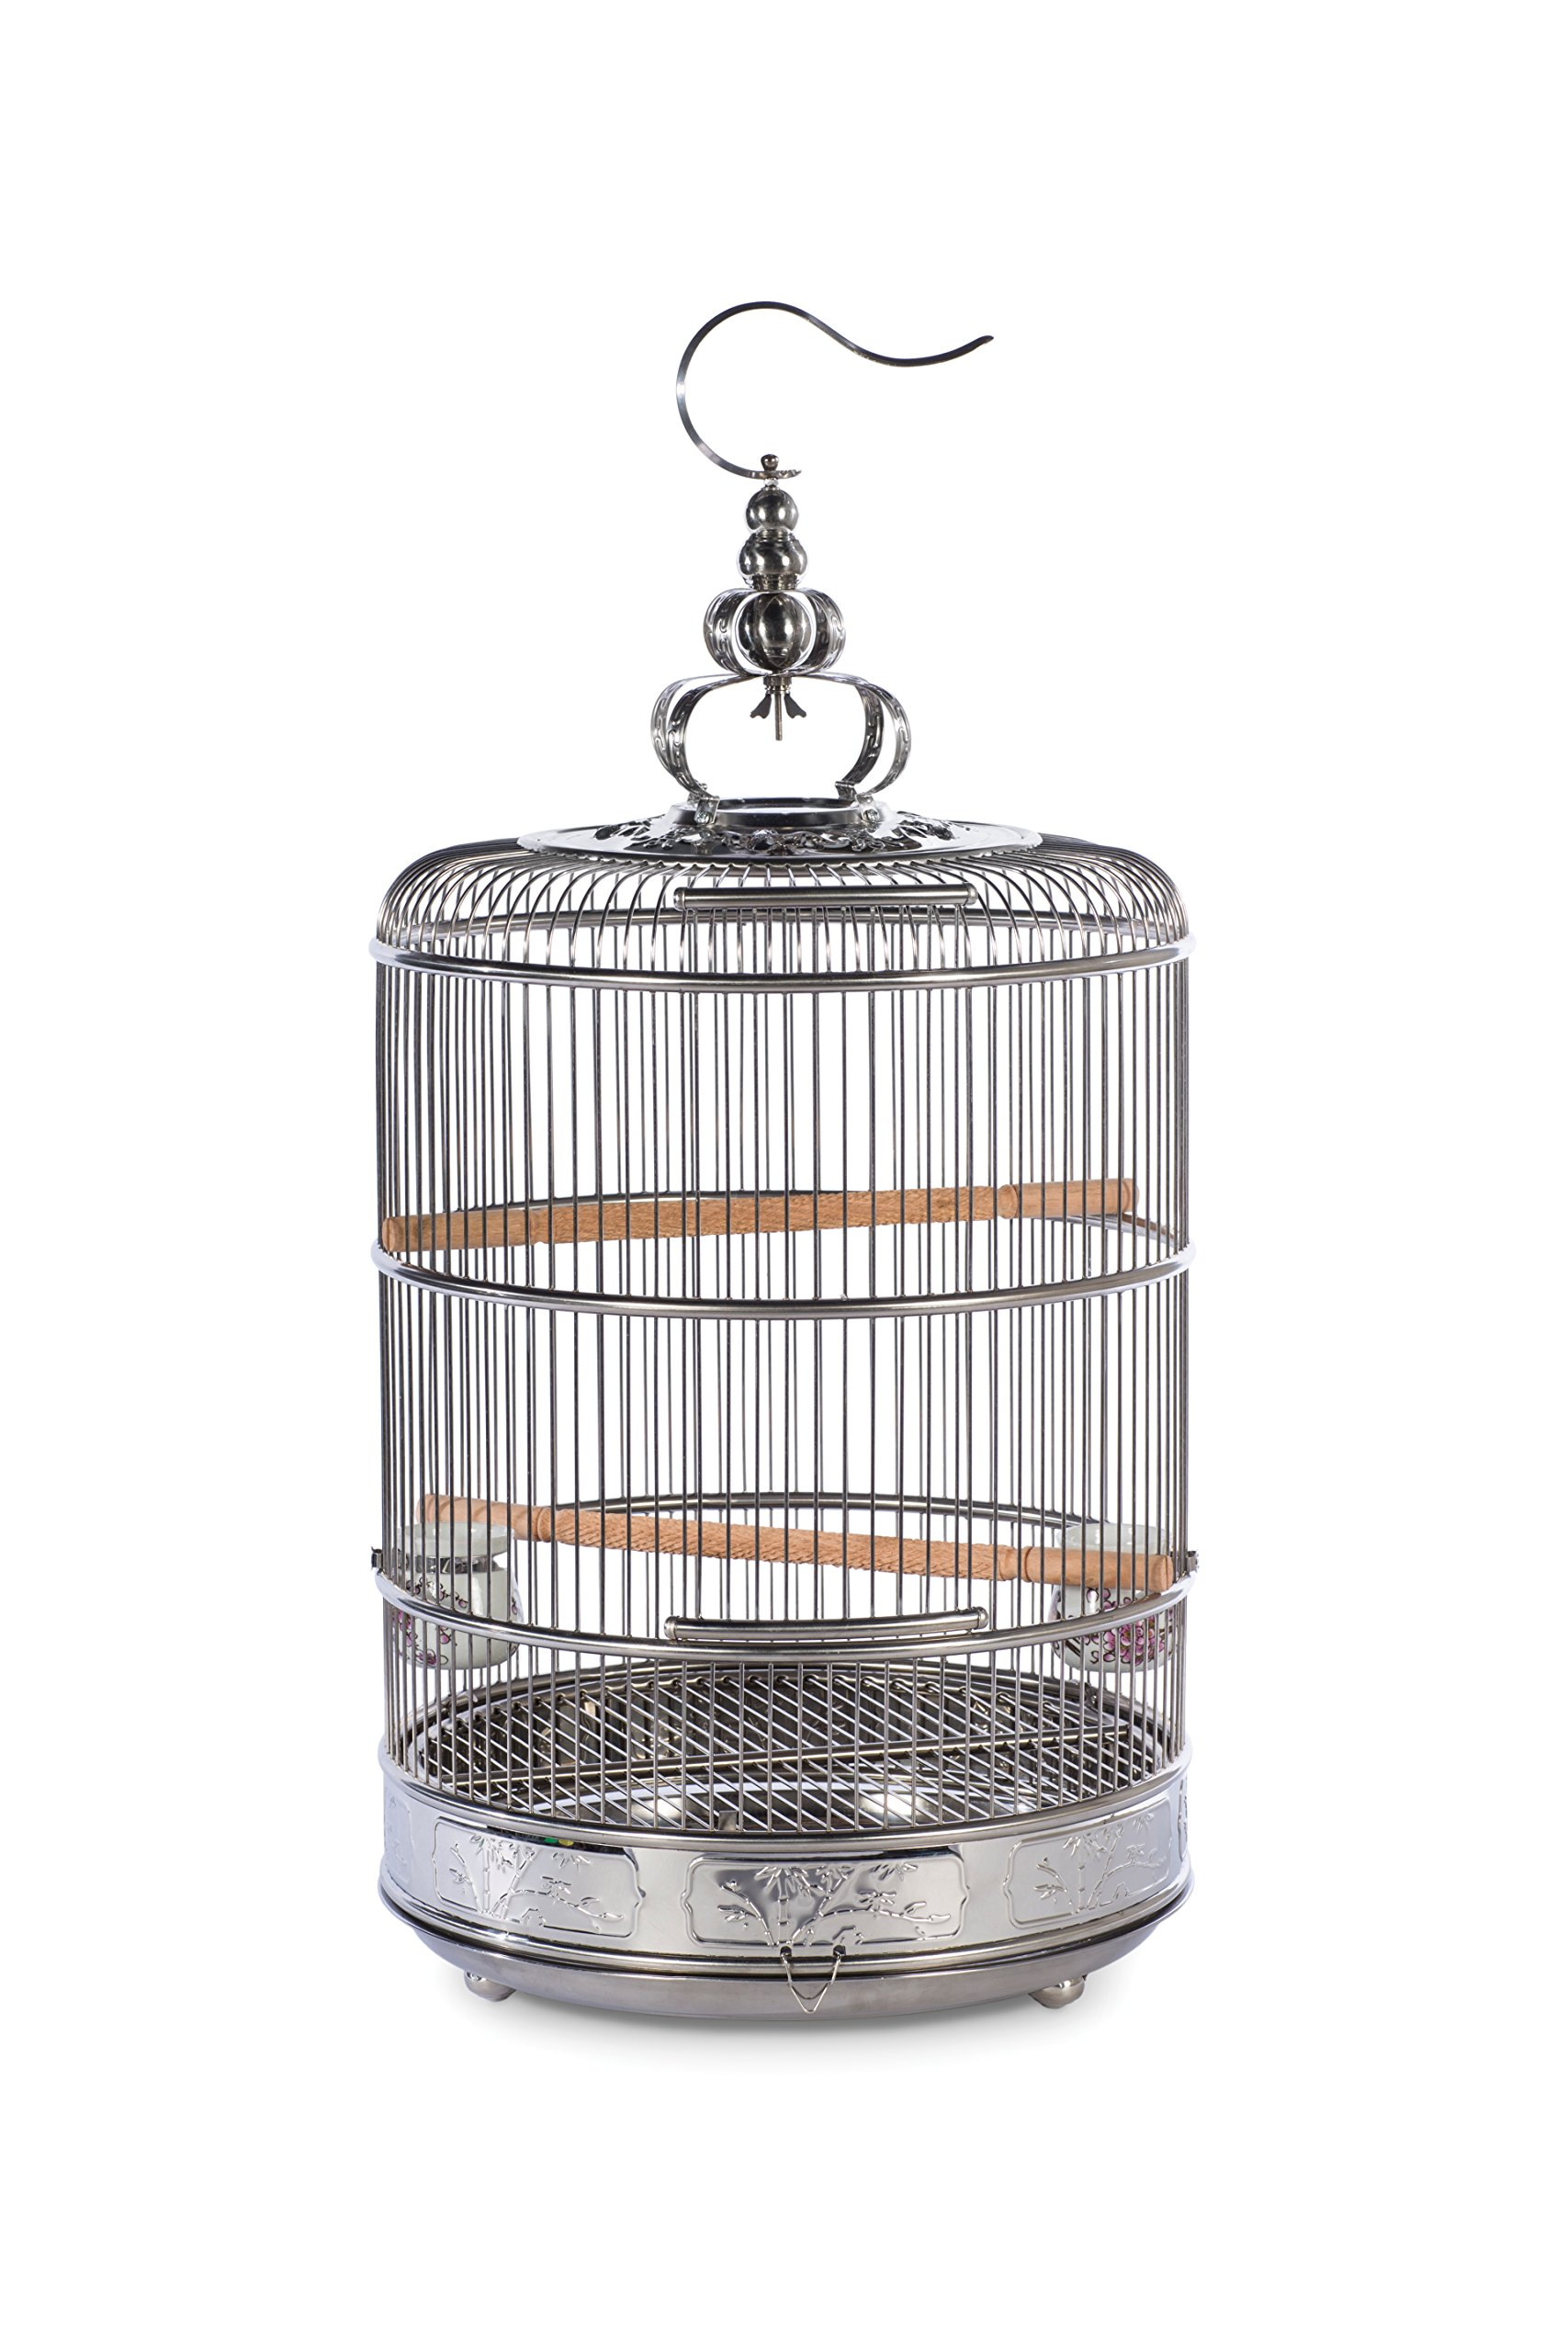 Prevue Pet Products Prevue Pet Products Empress Stainless Steel Bird Cage 151, Stainless Steel